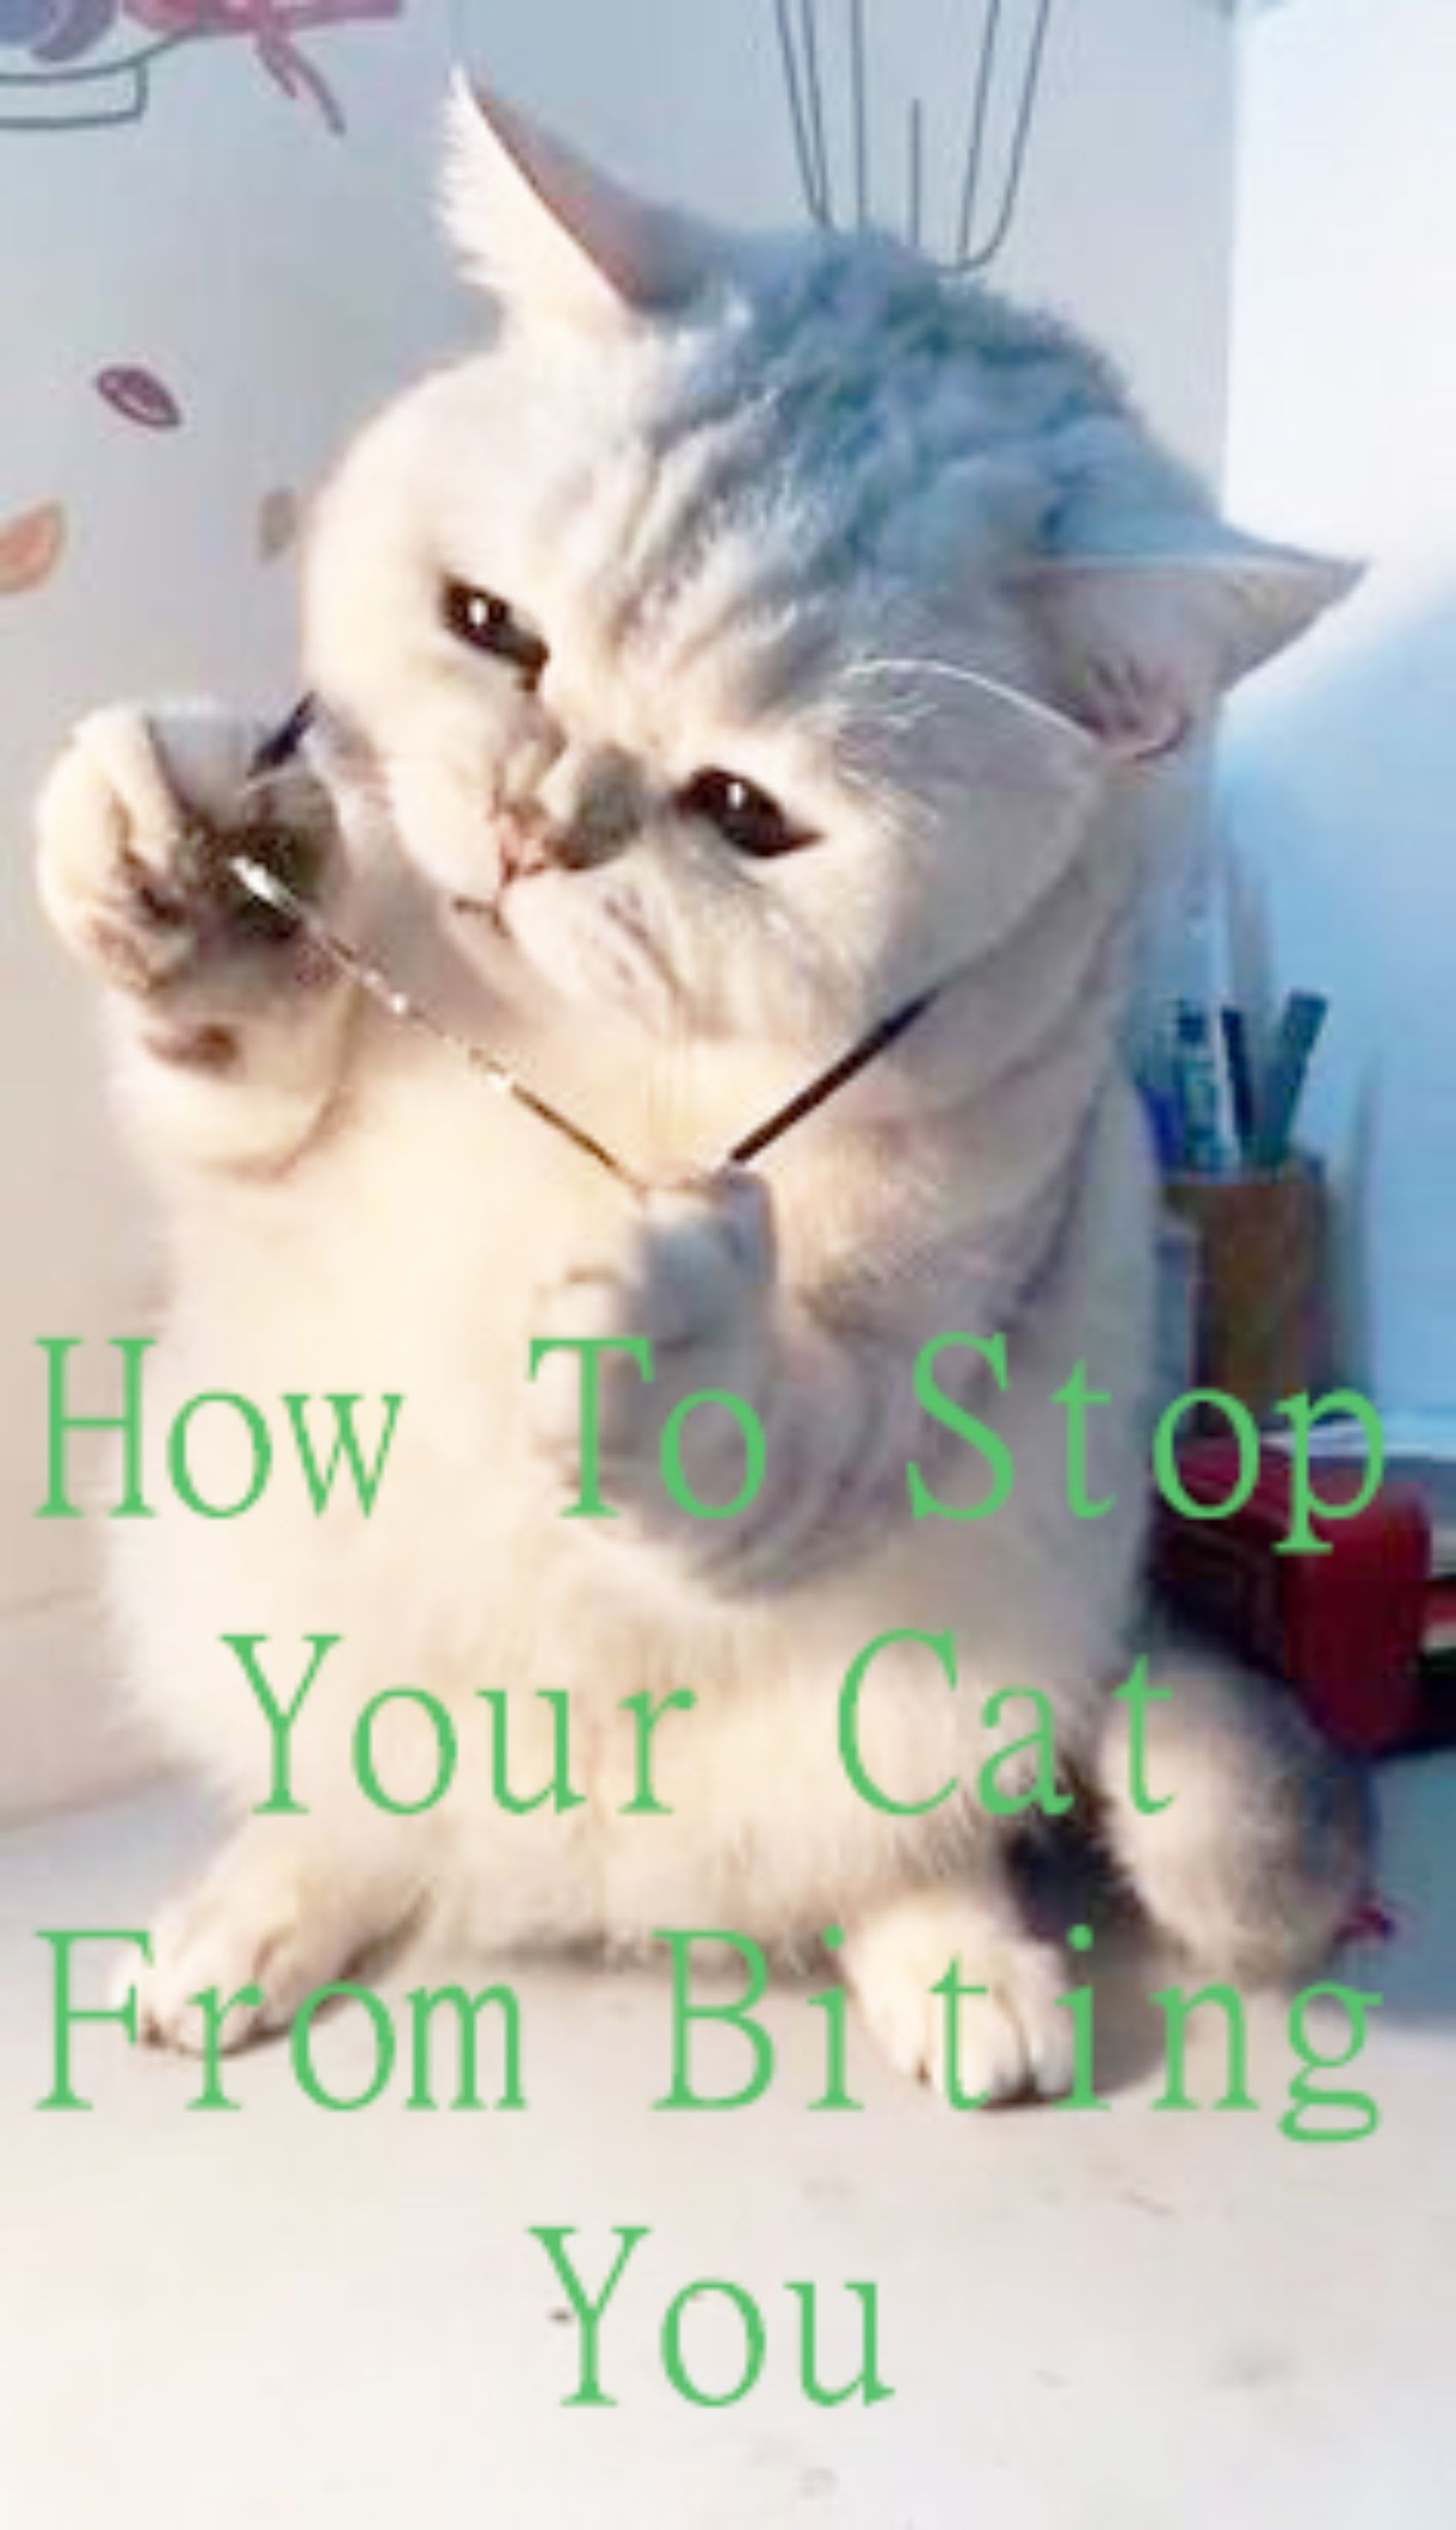 Don T Let Biting Behavior Become A Bad Habit 5 Simple Tips To Stop Your Kitten Biting Cats Bite For Various Reasons We Explain How To Determin In 2020 Cat Biting Cats